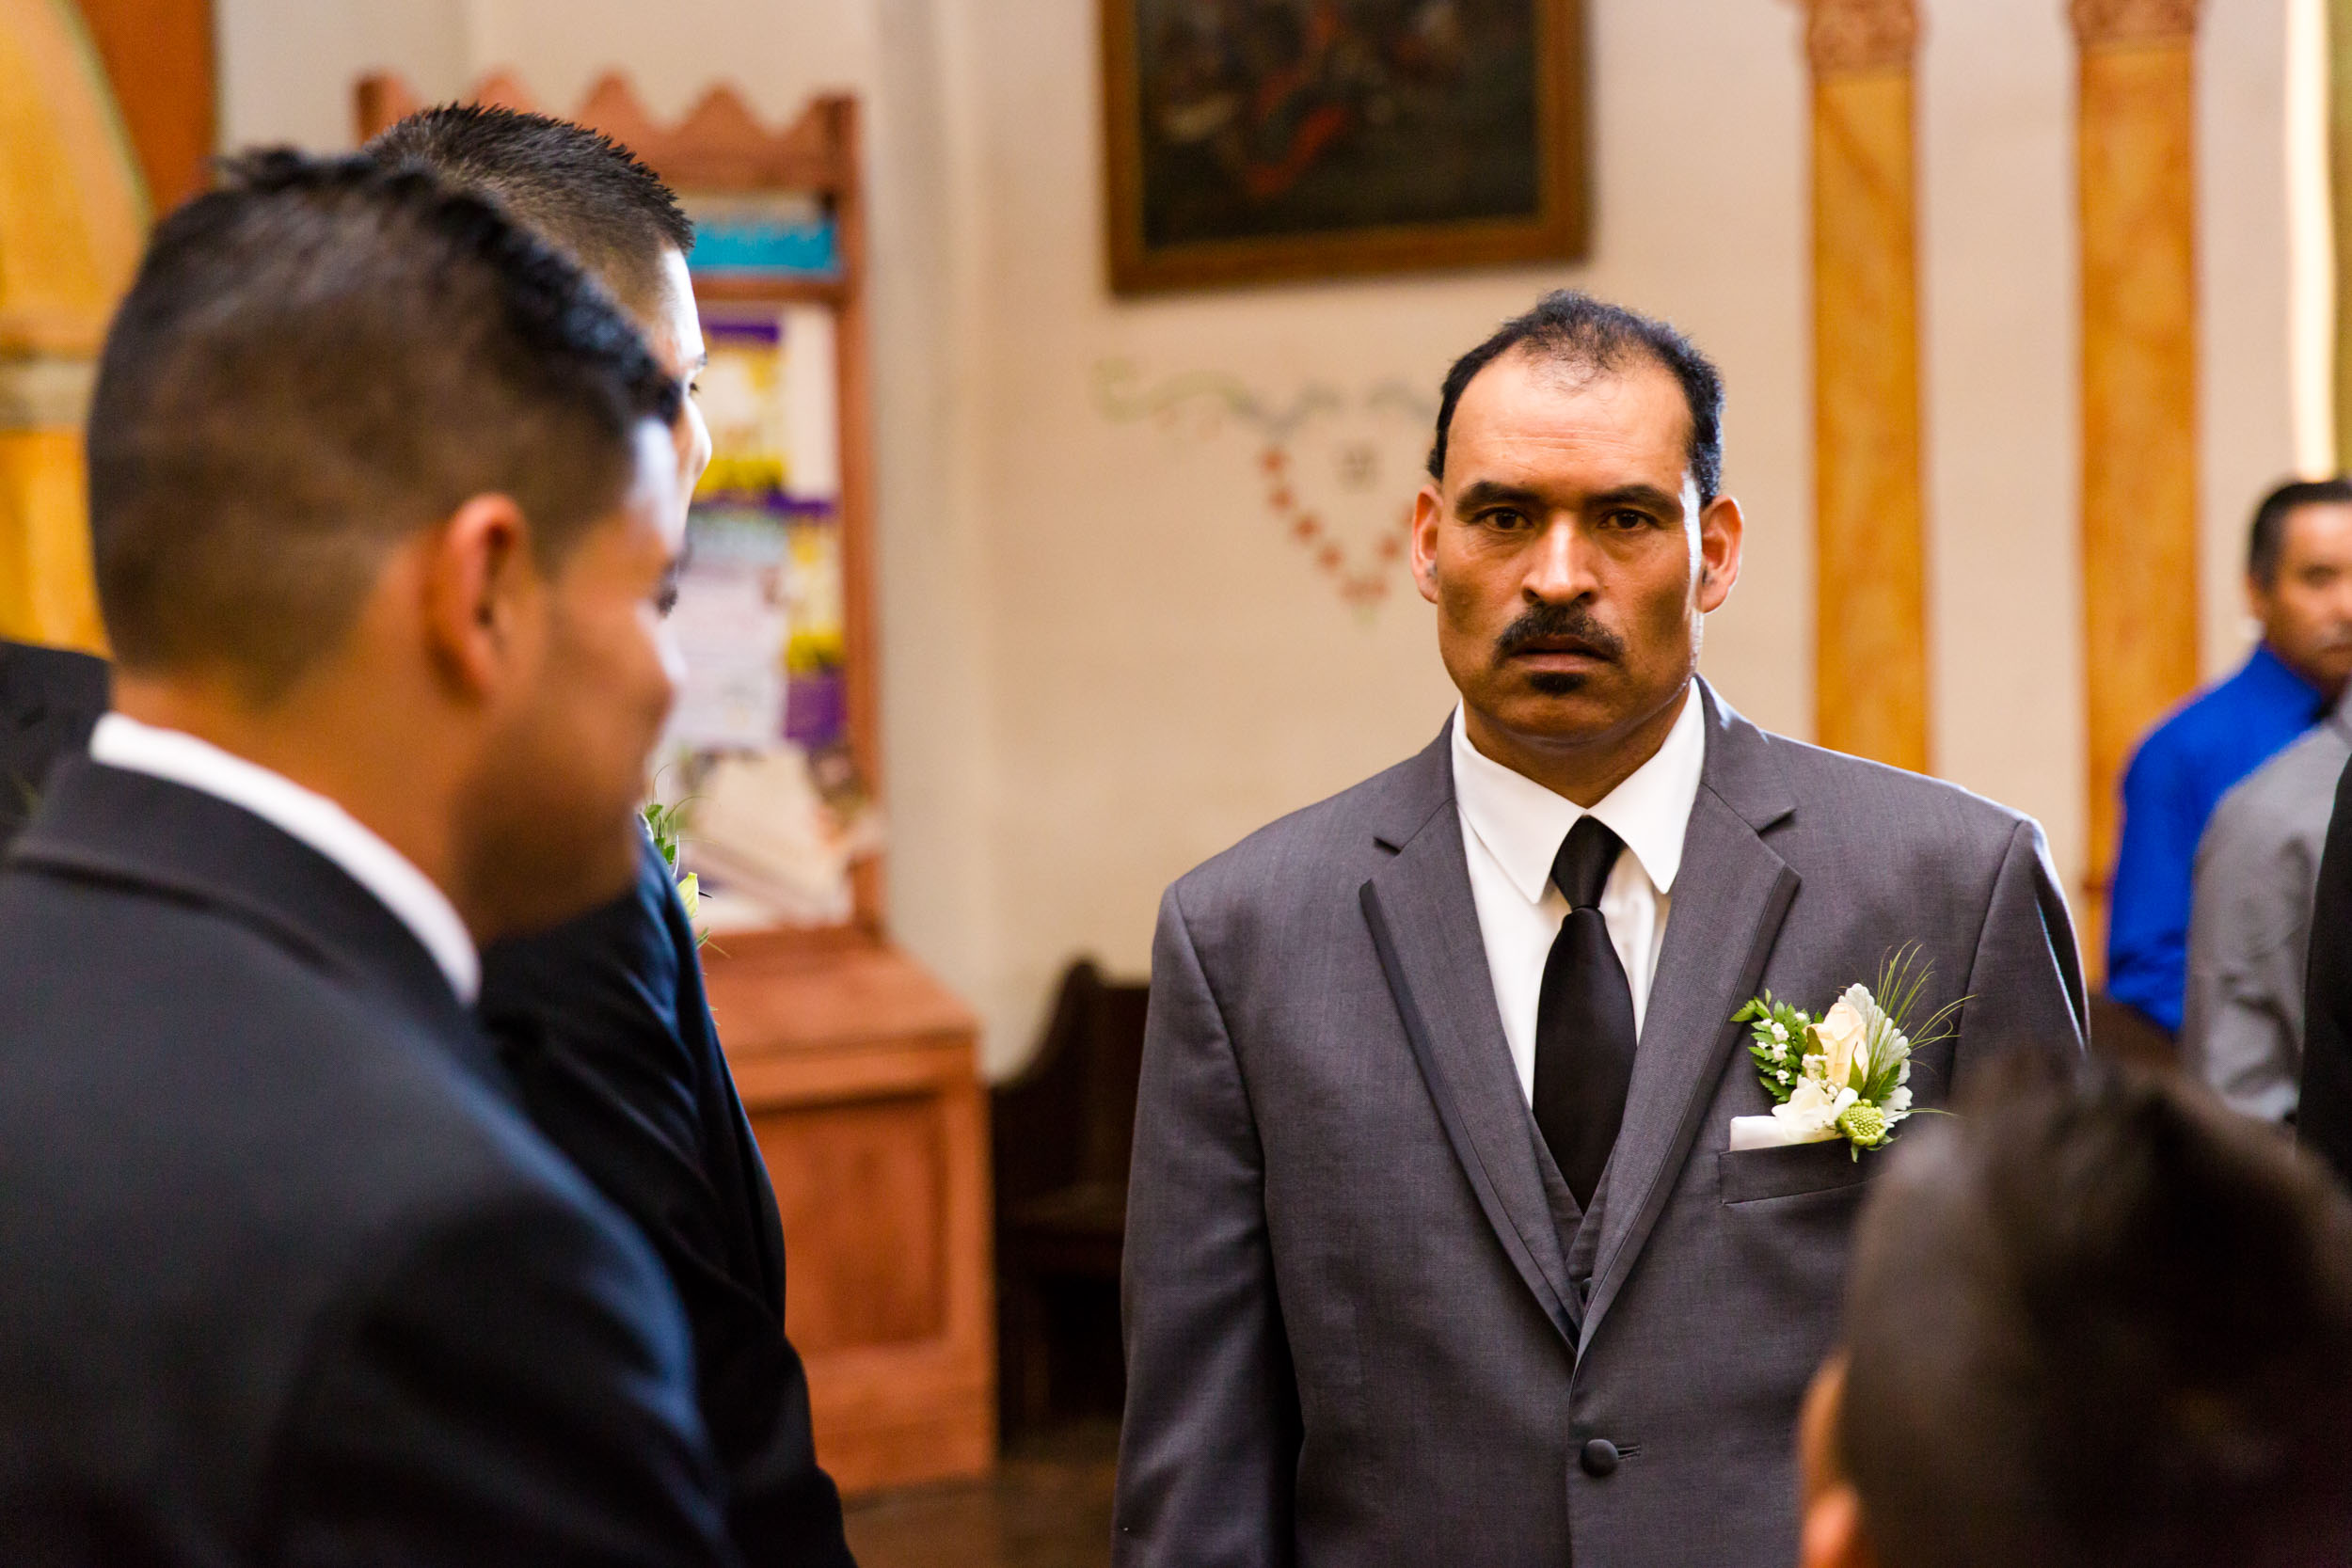 Our Wedding-215